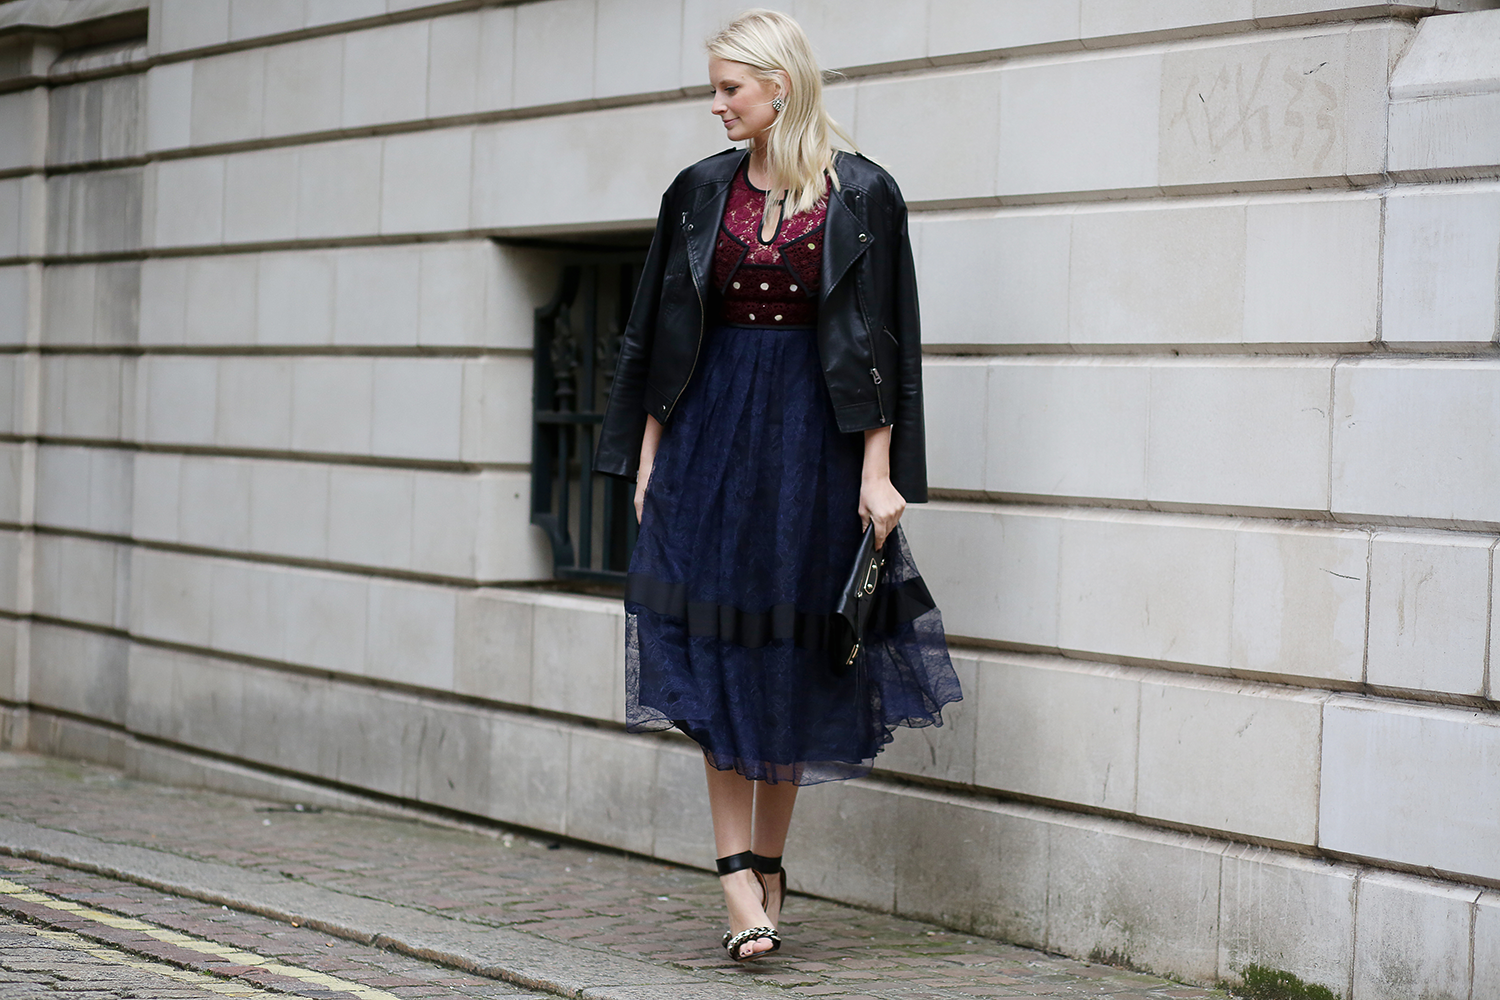 Burberry Prorsum, London Fashion Week | The Style Scribe